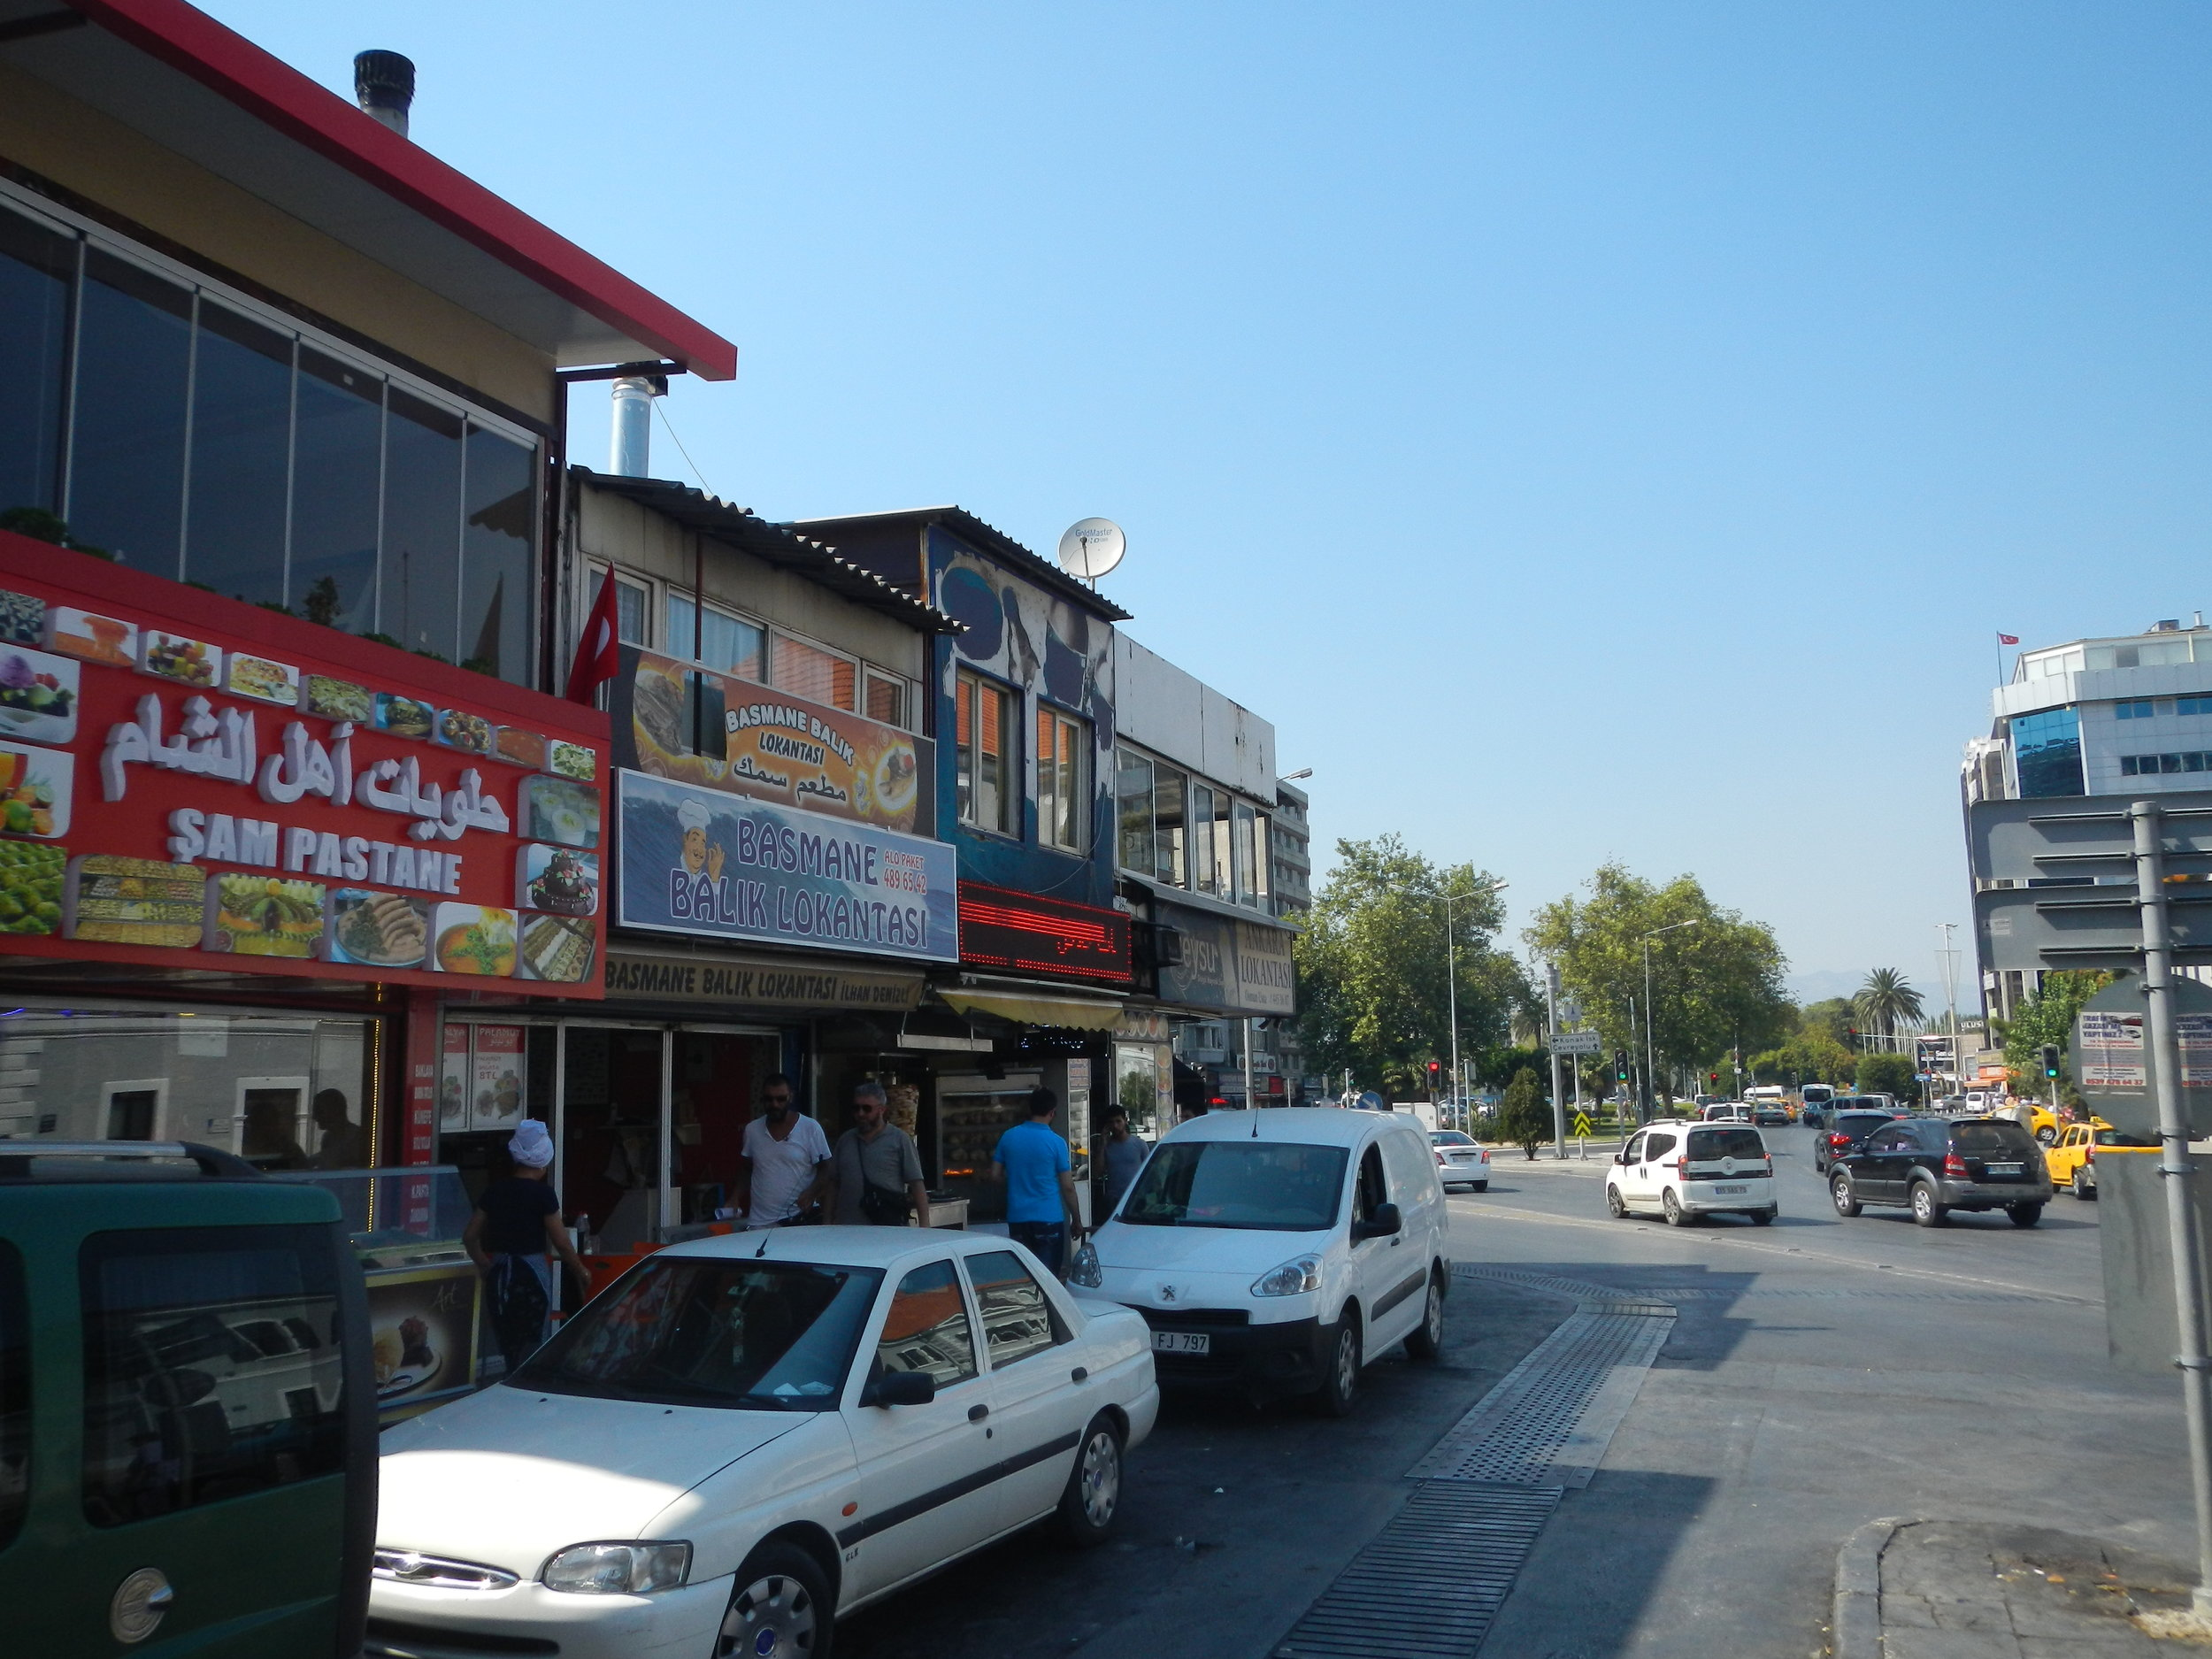 Basmane has been transformed by its Syrian population. This is the main square, with a Syrian sweet and food shop, a Turkish seafood restaurant and a Syrian shawarma shop all displaying their names in Arabic and Turkish. Further down the road are Syrian and Turkish barber shops, vegetable stalls, tea and shisha cafes, electronics stores, and clothing shops.